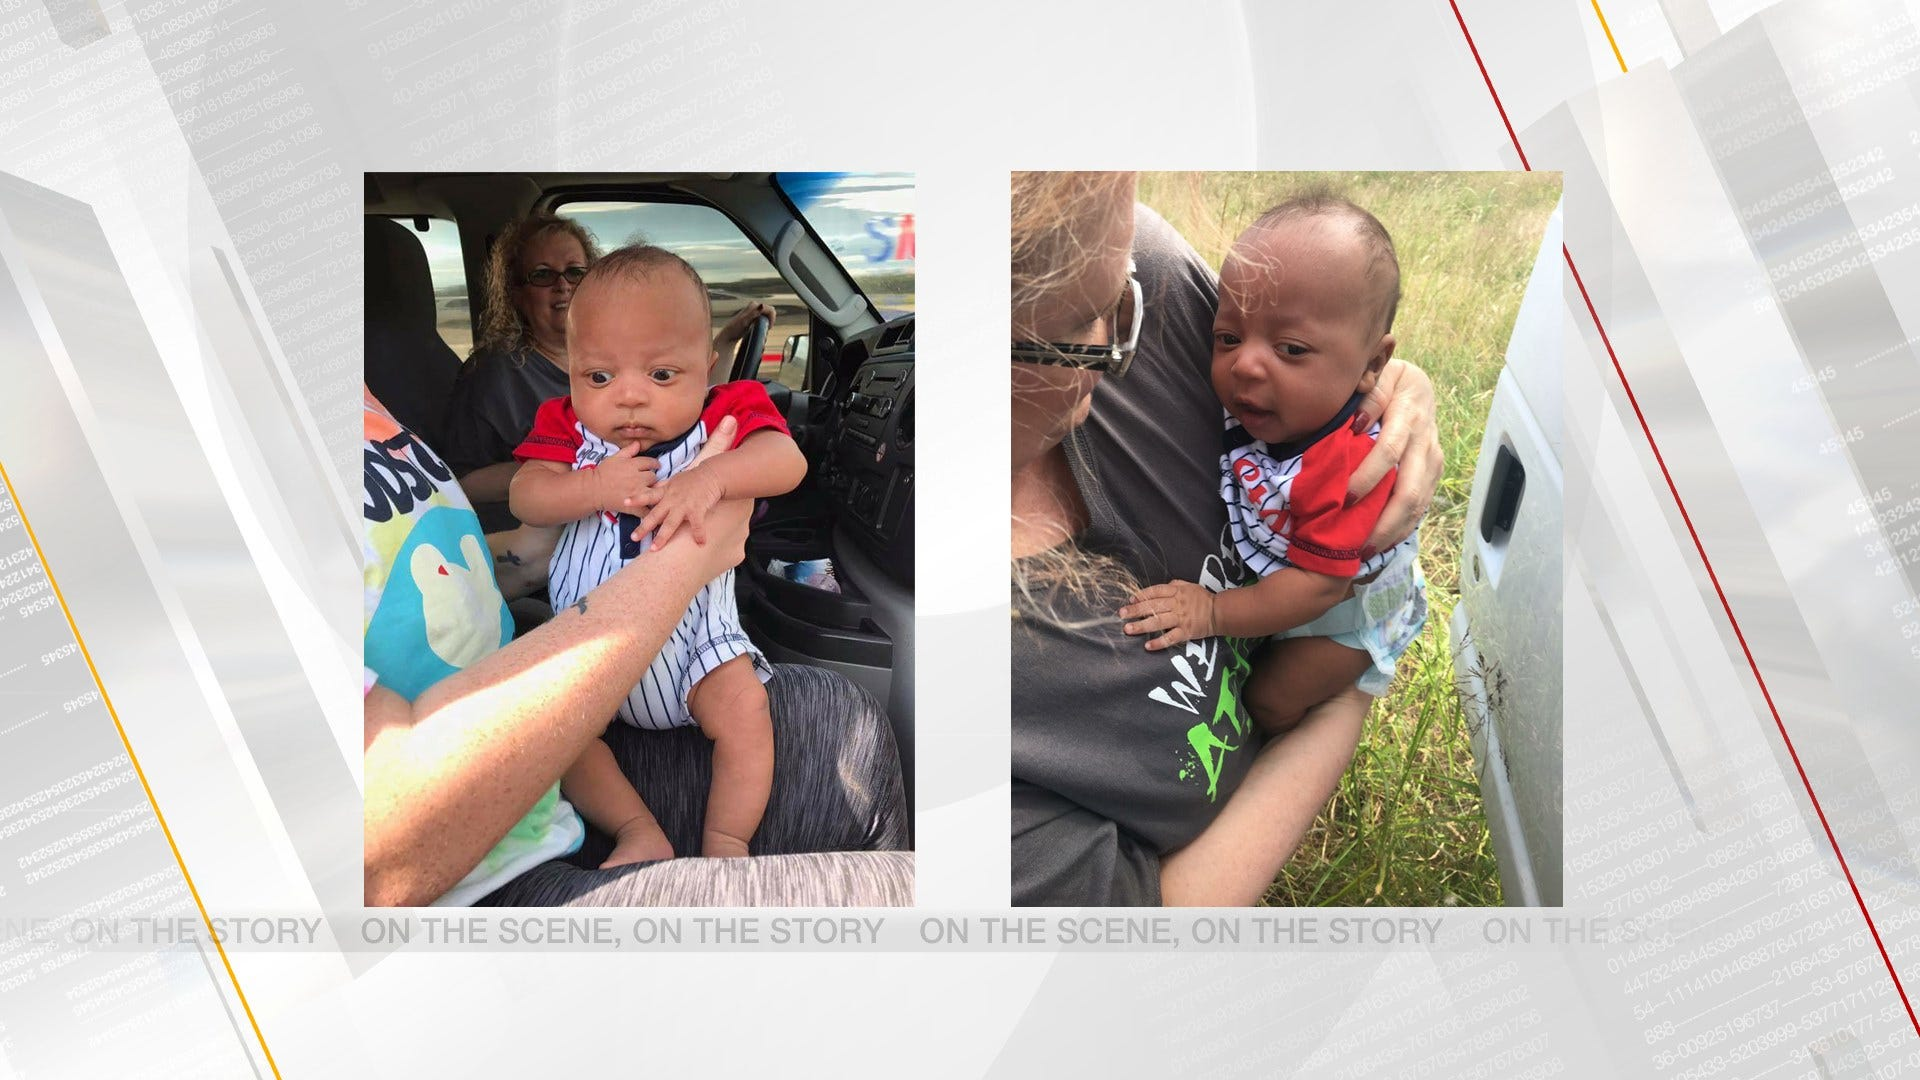 4-Week-Old Baby In DHS Custody After Being Found Near I-40